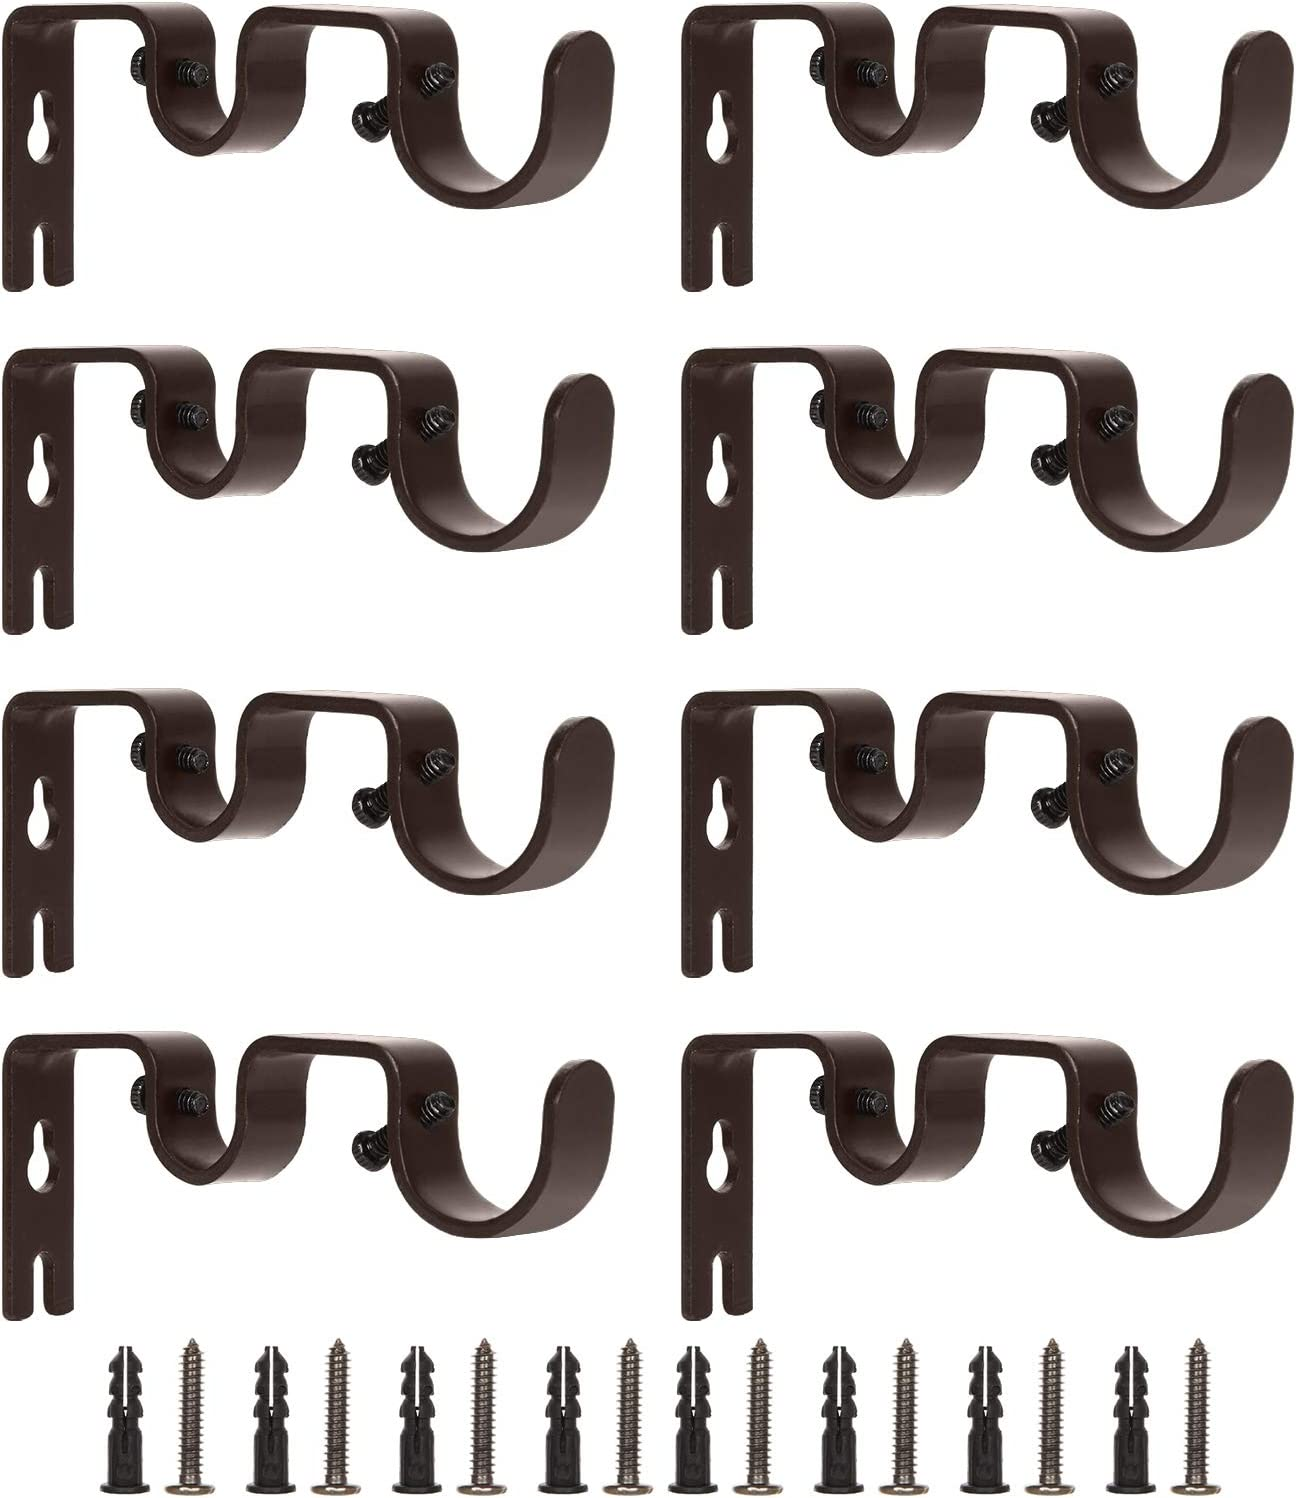 Wall Mount Curtain Rod Holders for Curtain Rods and Drapery Rod Bronze ZOEYES 8 Pack Heavy Duty Double Curtain Rod Brackets for 1 and 5//8 Inch Rod